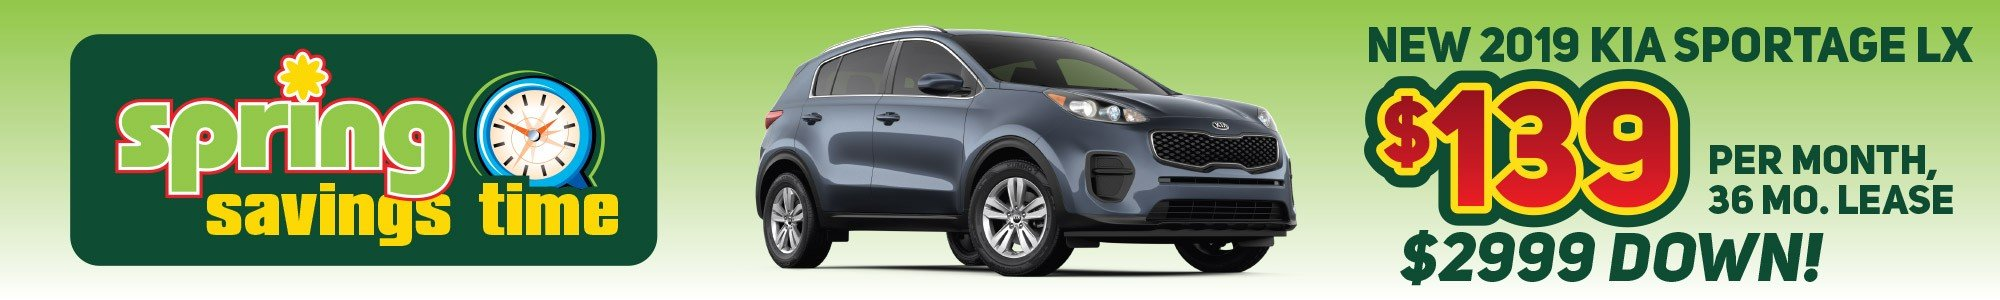 Kia Sportage on sale at Sansone Jr's 66 Kia in Neptune NJ